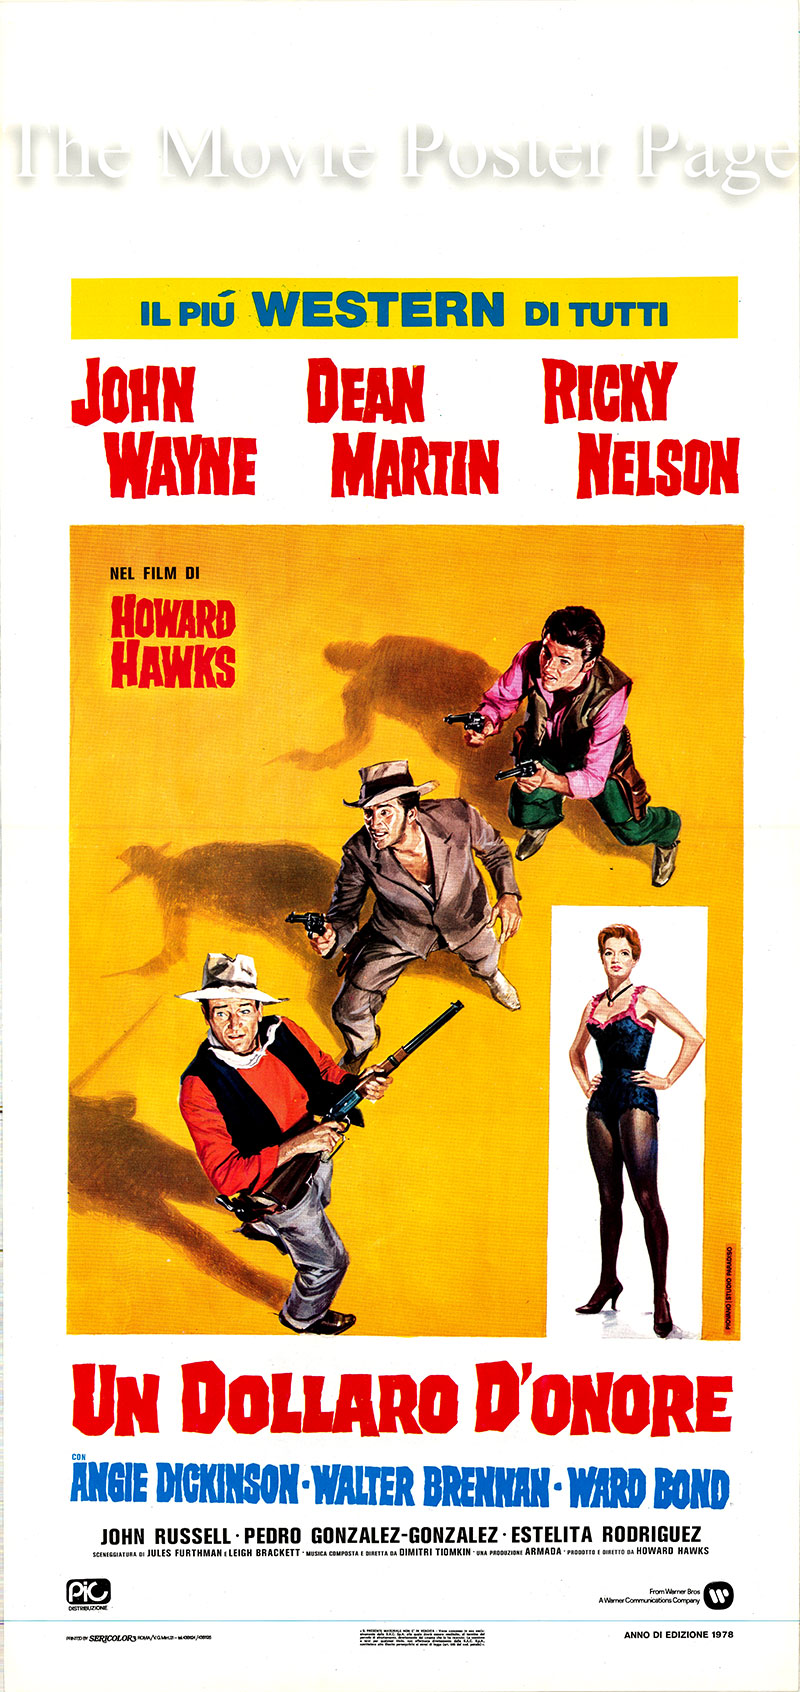 Pictured is an Italian locandina poster for a 1978 rerelease of the 1959 Howard Hawks film <i>Rio Bravo</i> starring John Wayne as Sheriff John T. Chance.